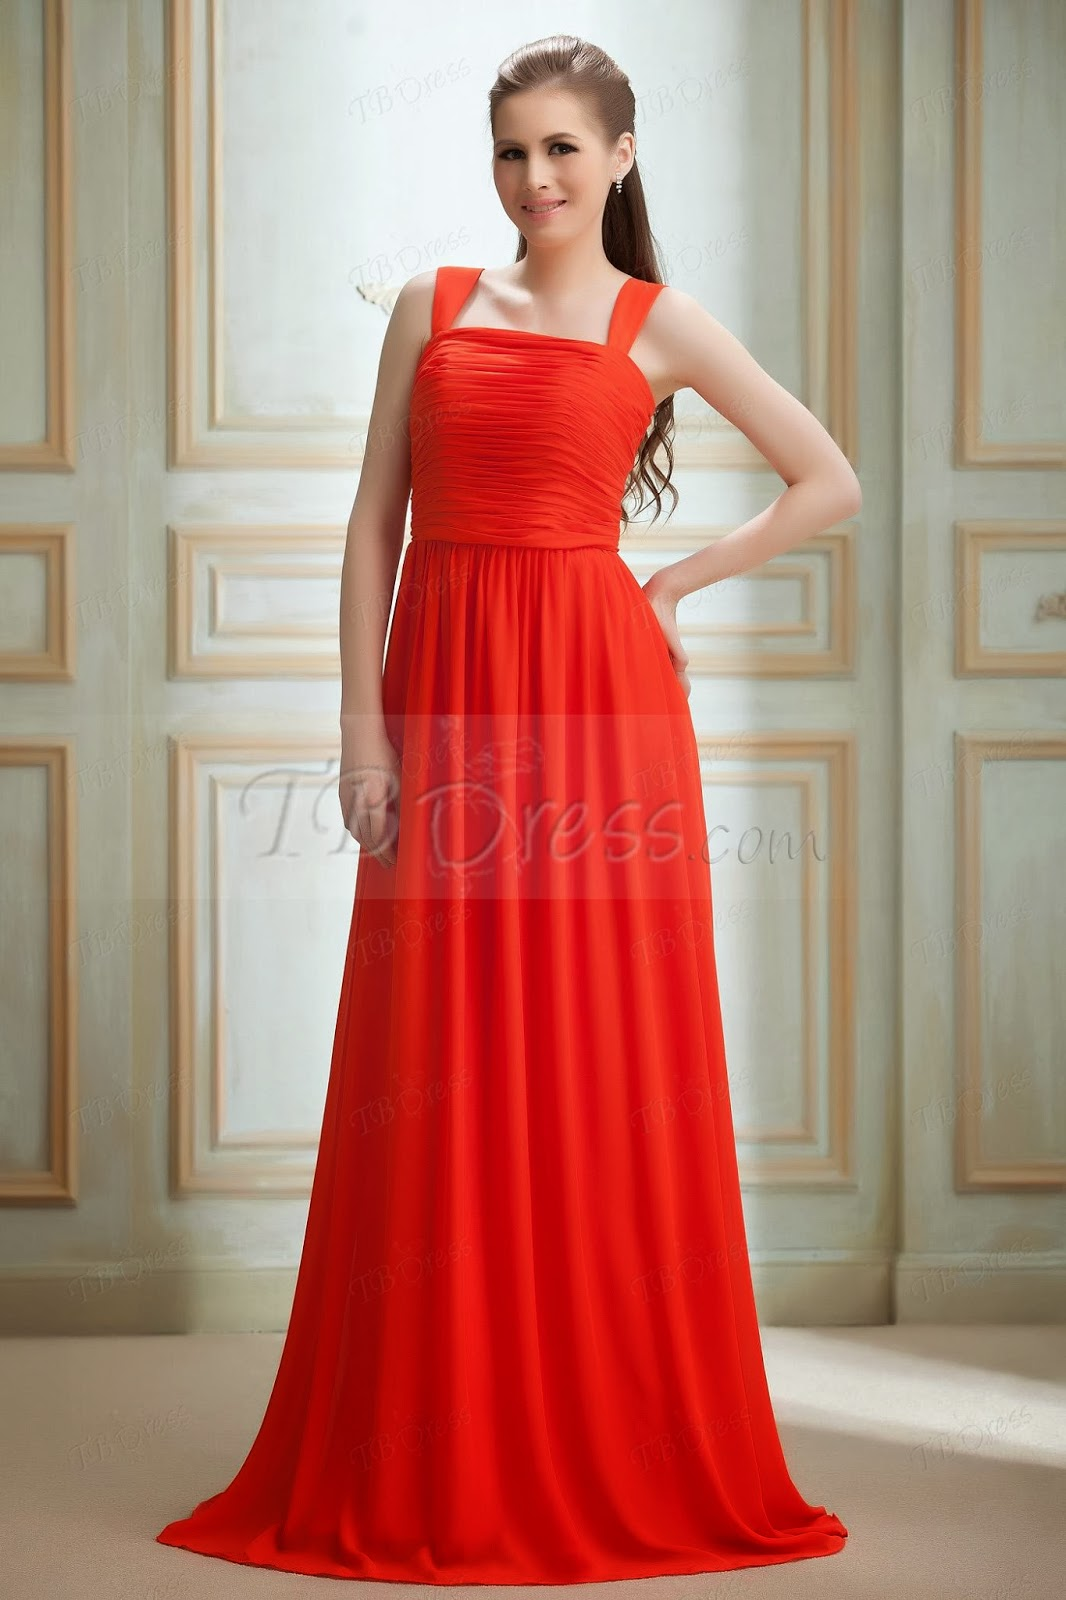 Valentine's Day Dress Ideas - Best Valentine Dresses 2014! | The ...